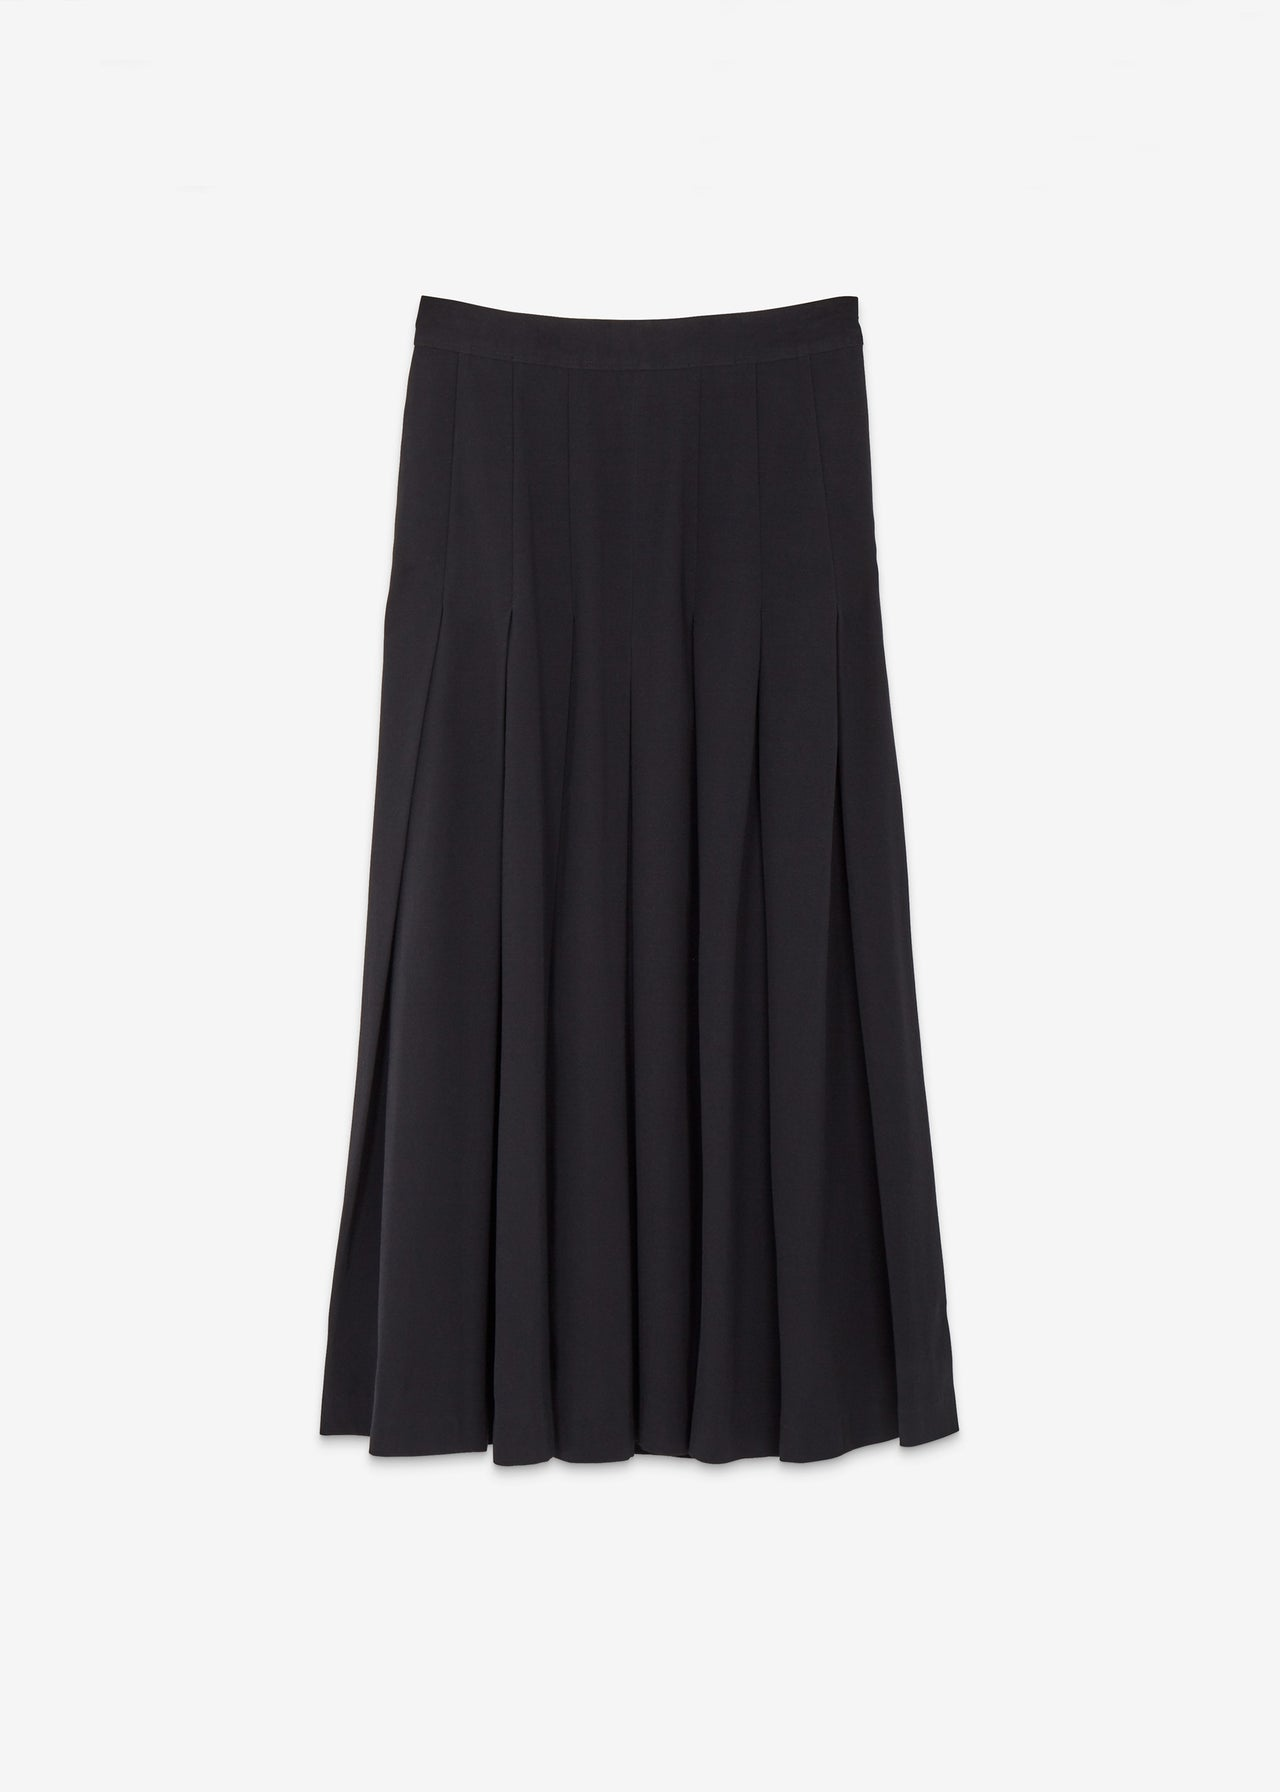 Box Pleat Skirt - CO Collections